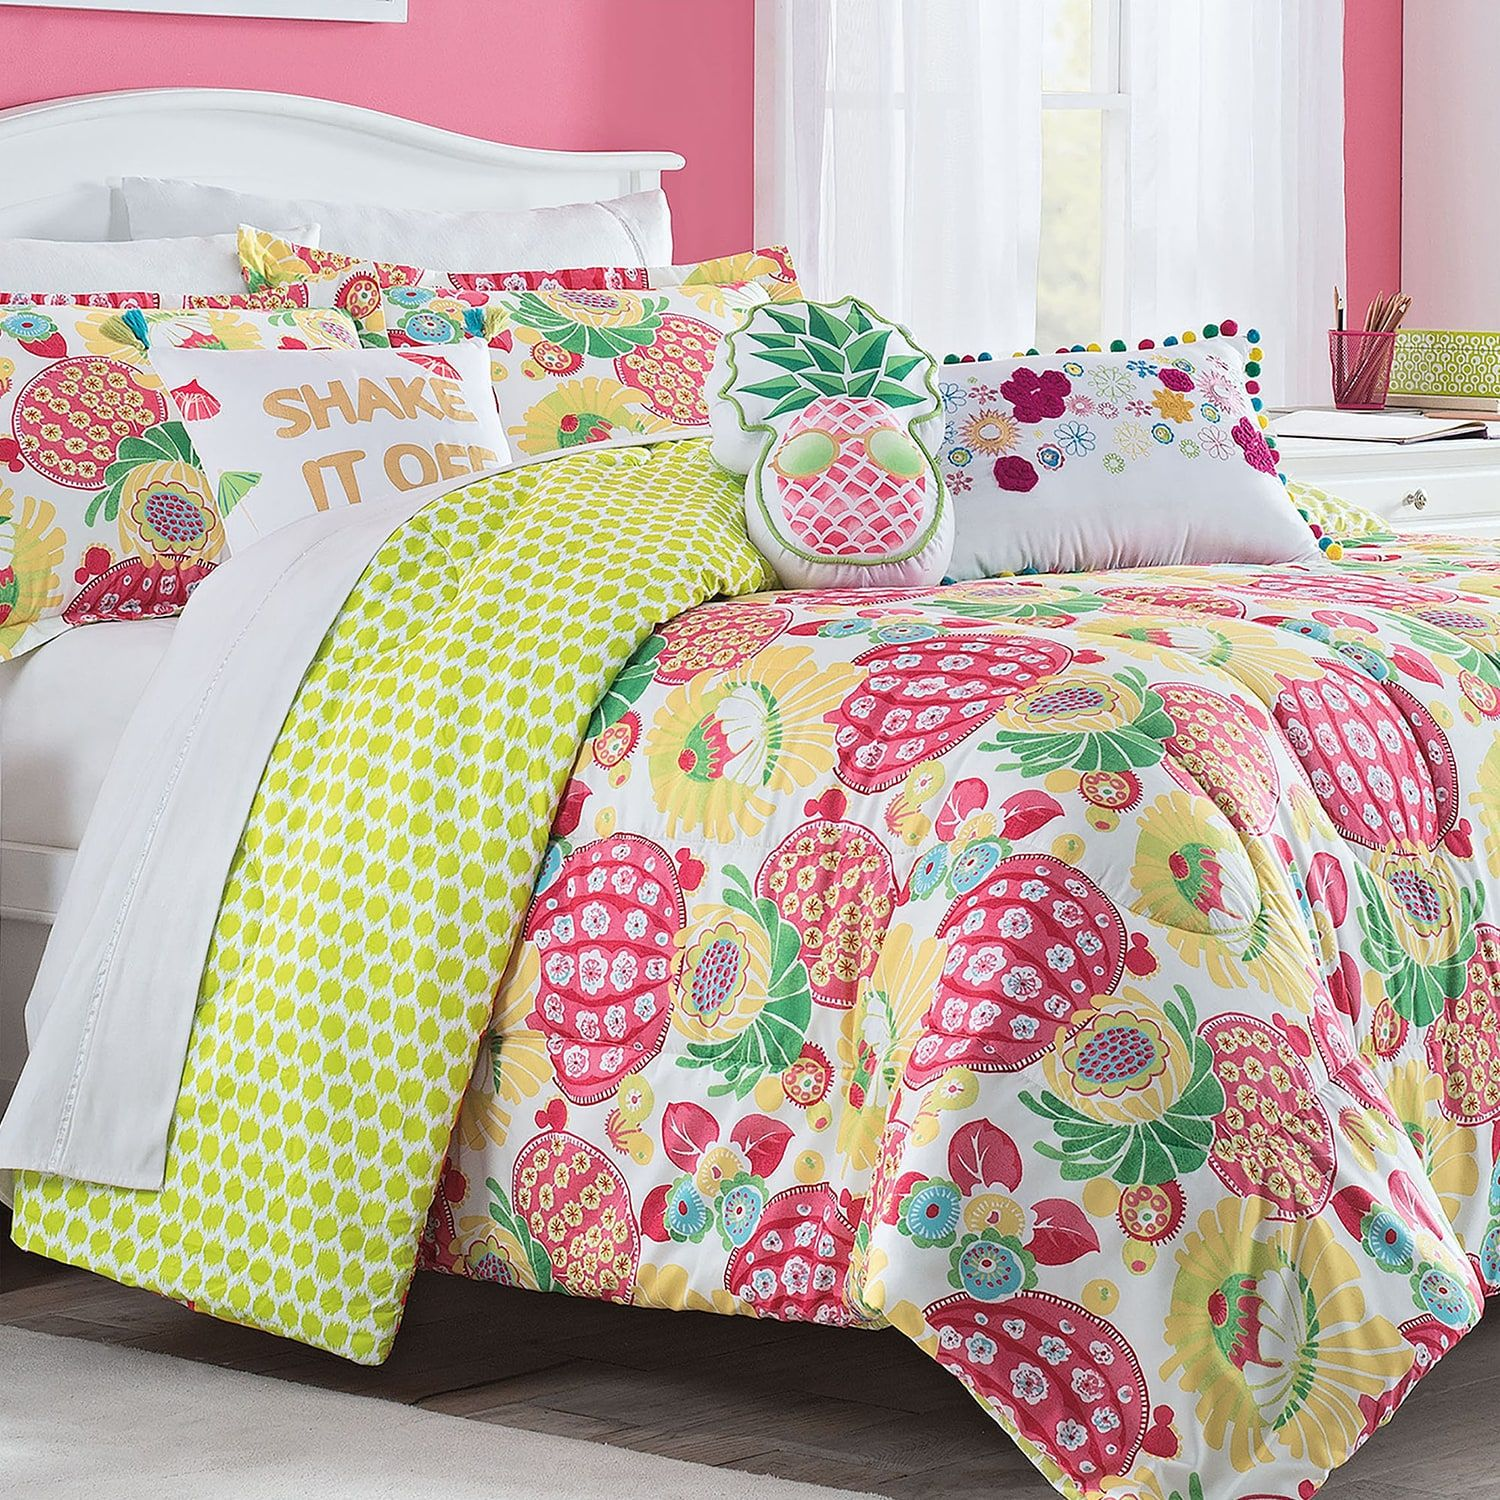 Waverly Spree Copacabana Reversible Comforter Set Copacabana